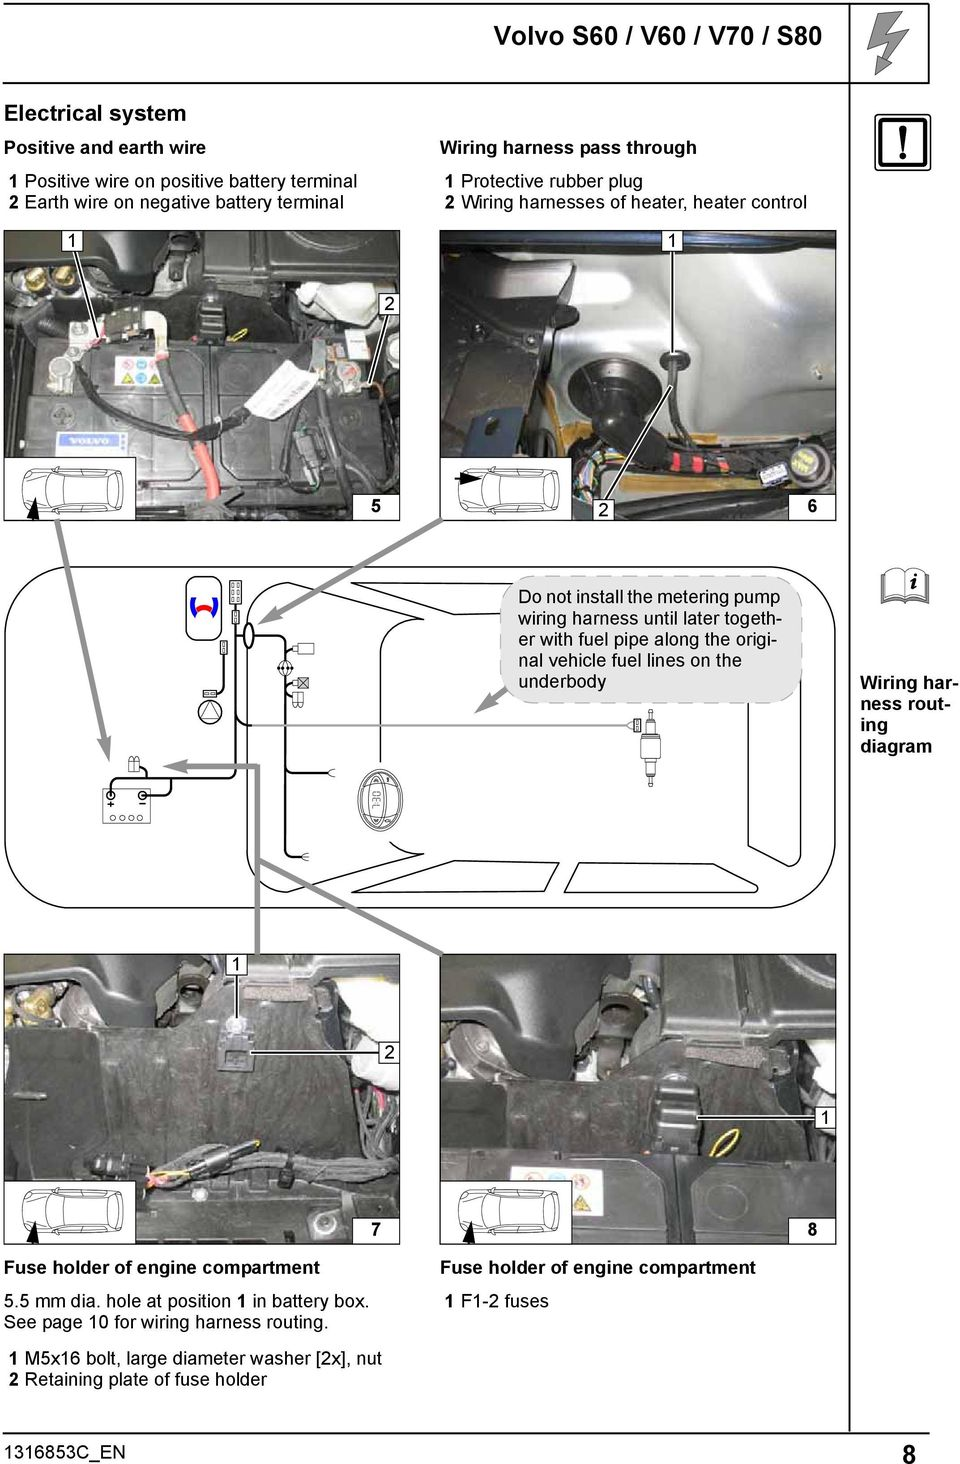 Always Follow All Webasto Installation And Repair Instructions 2003 Volvo S60 2 4t Fuse Box Along The Original Vehicle Fuel Lines On Underbody Wiring Harness Routing Diagram 7 8